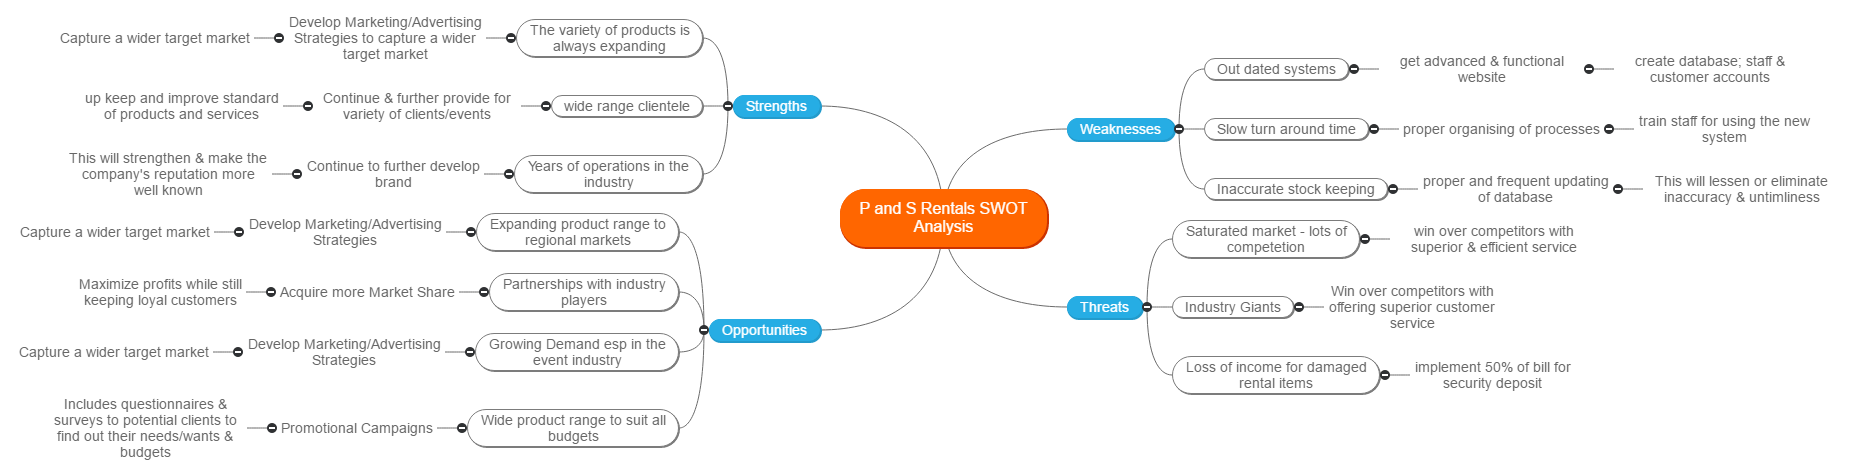 P and S Rentals SWOT Analysis Mind Map